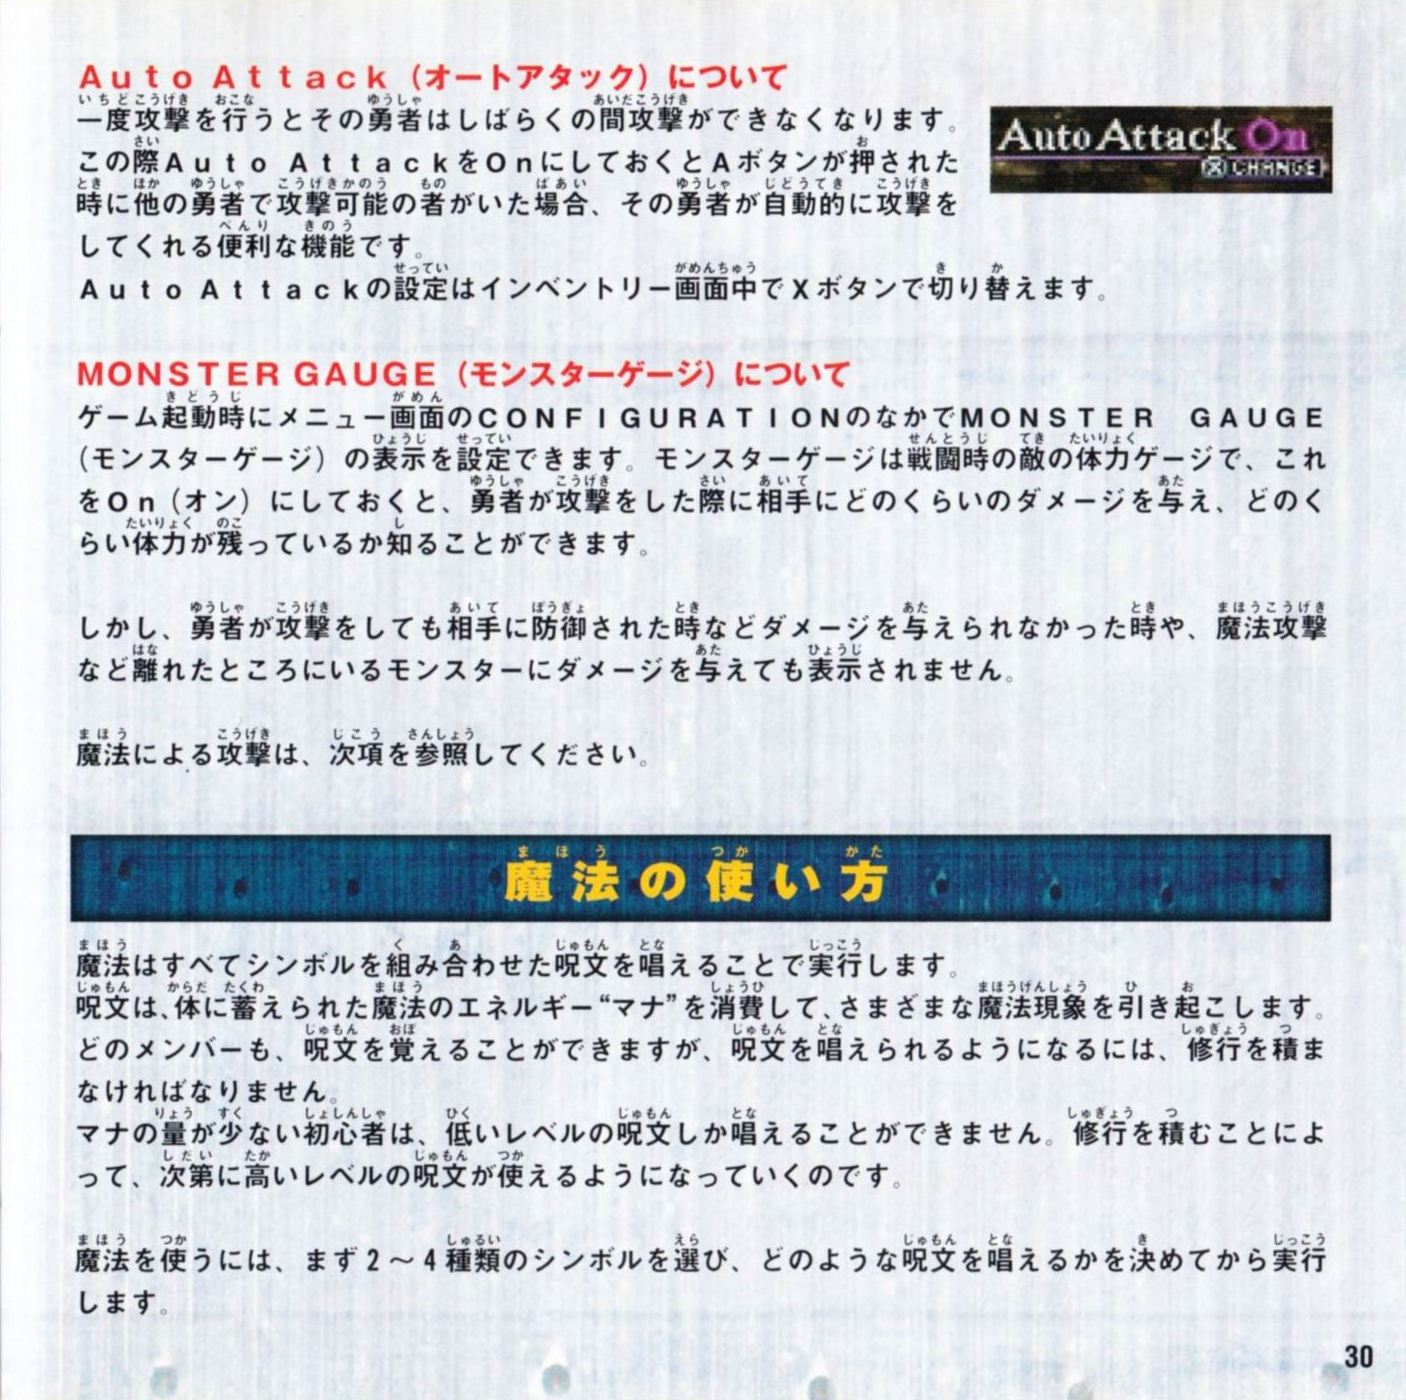 Game - Dungeon Master Nexus - JP - Sega Saturn - Booklet - Page 031 - Scan